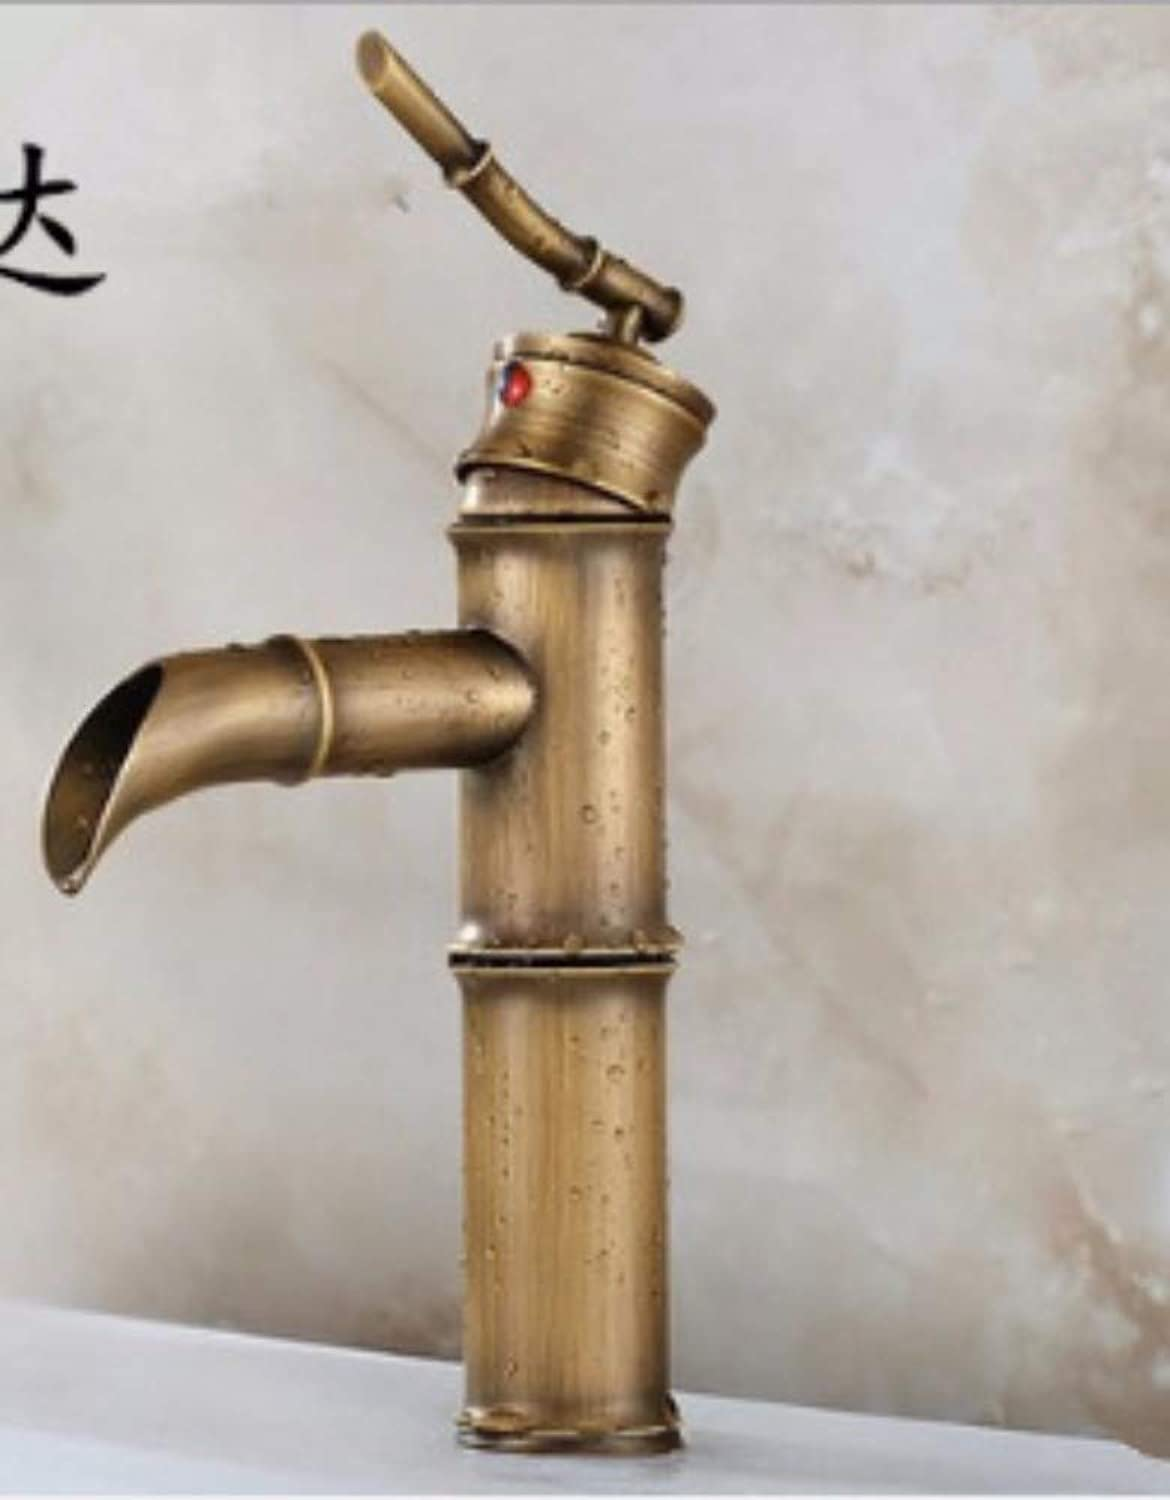 Faucet Retro Drawing European Style Brass Faucet With Waterfall And Hose Pure Copper Vintage Curve High-End Water Tap Washbasin Mixer Basin Sink Bathroom Single Spout 1 Lever Handle